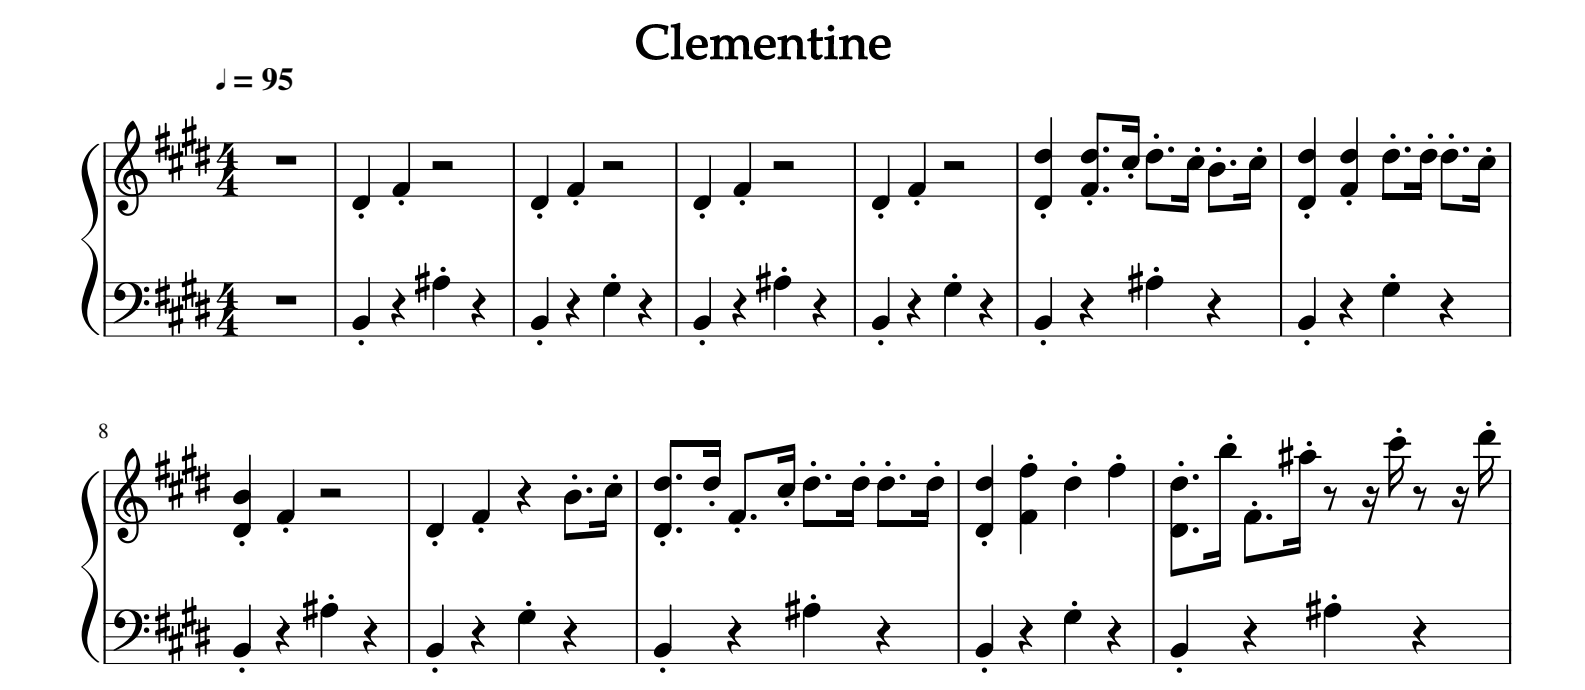 Clementine For Piano Sheet Music And Midi Files For Piano